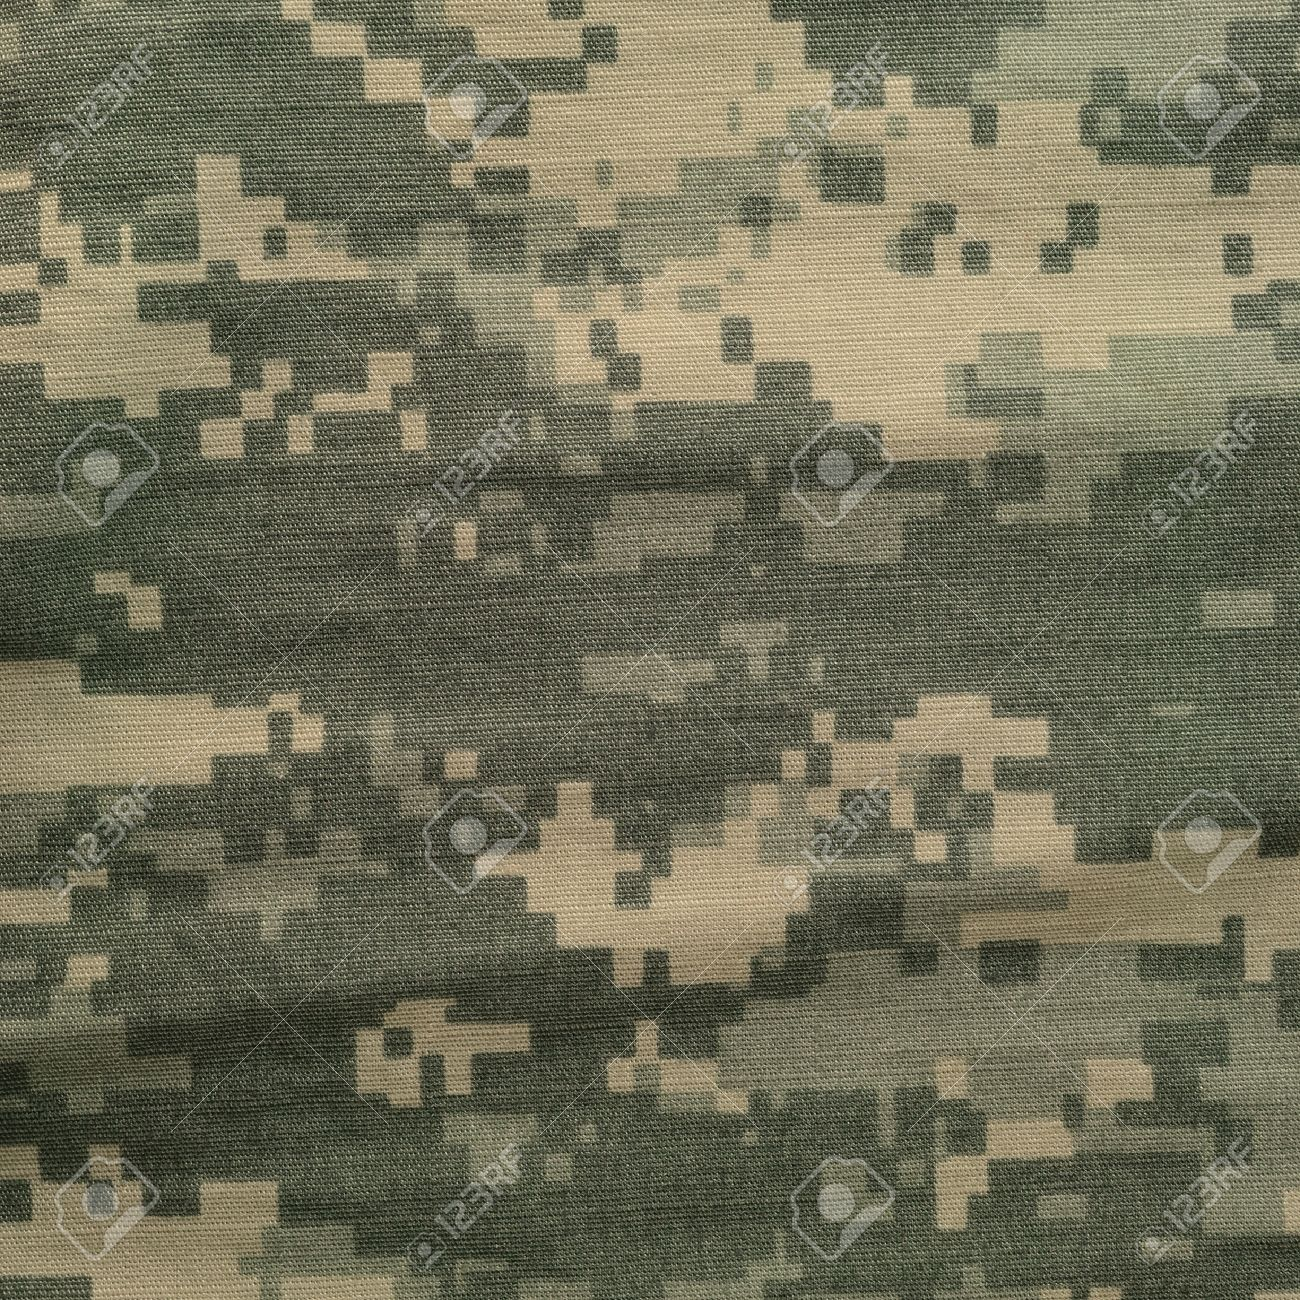 Army Combat Uniform Digital Camo USA Military ACU Macro Closeup Detailed Large Rip Stop Fabric Texture Background Crumpled Wrinkled Foliage Green